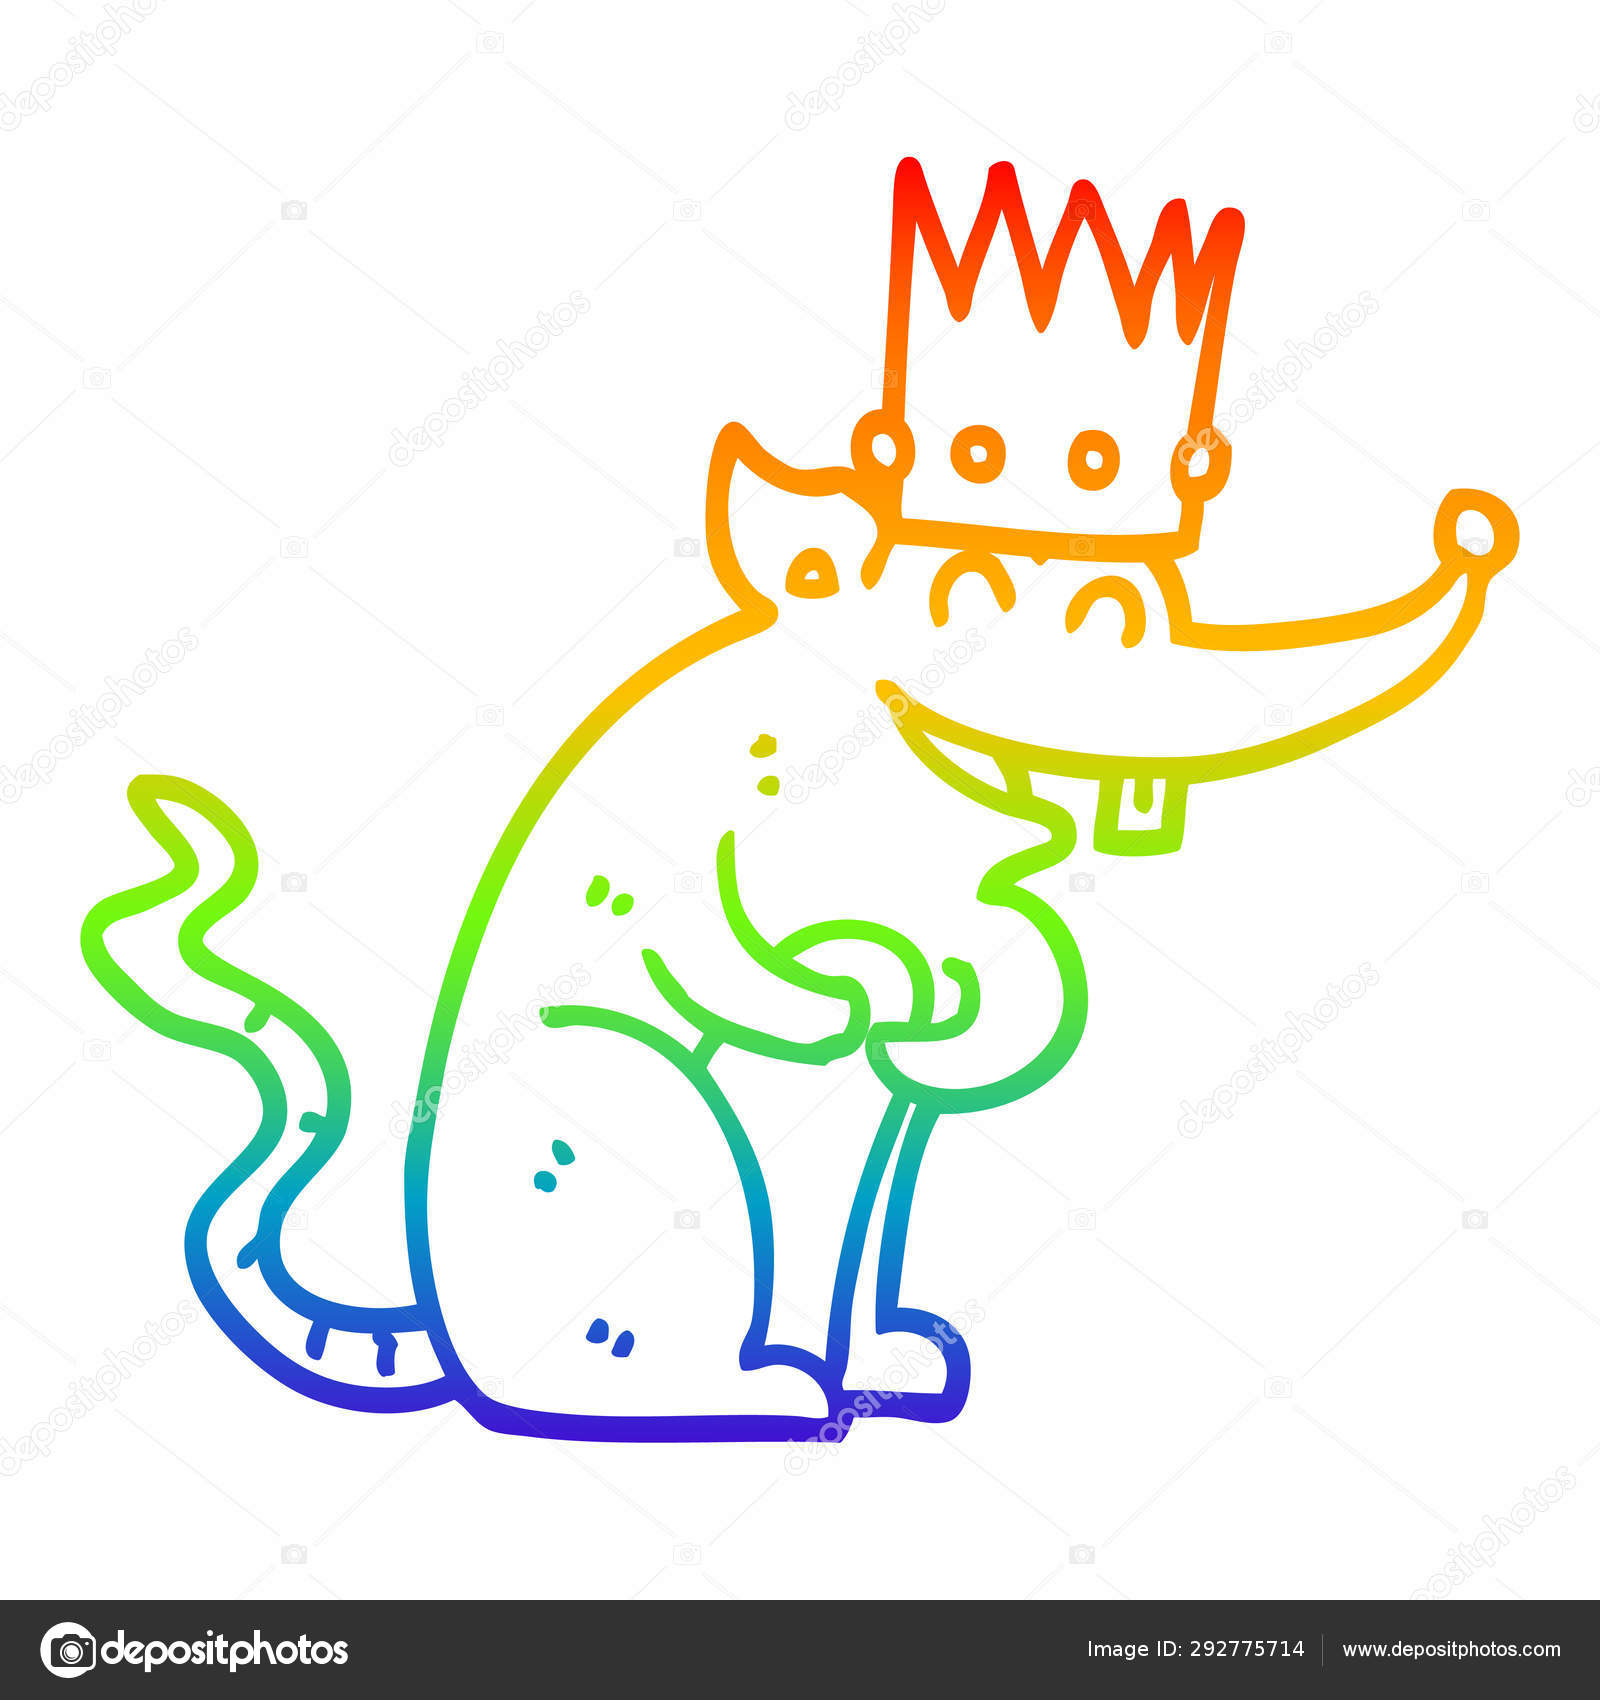 Rat With Crown Stock Vectors Royalty Free Rat With Crown Illustrations Page 3 Depositphotos Use them in commercial designs under lifetime, perpetual & worldwide rights. depositphotos